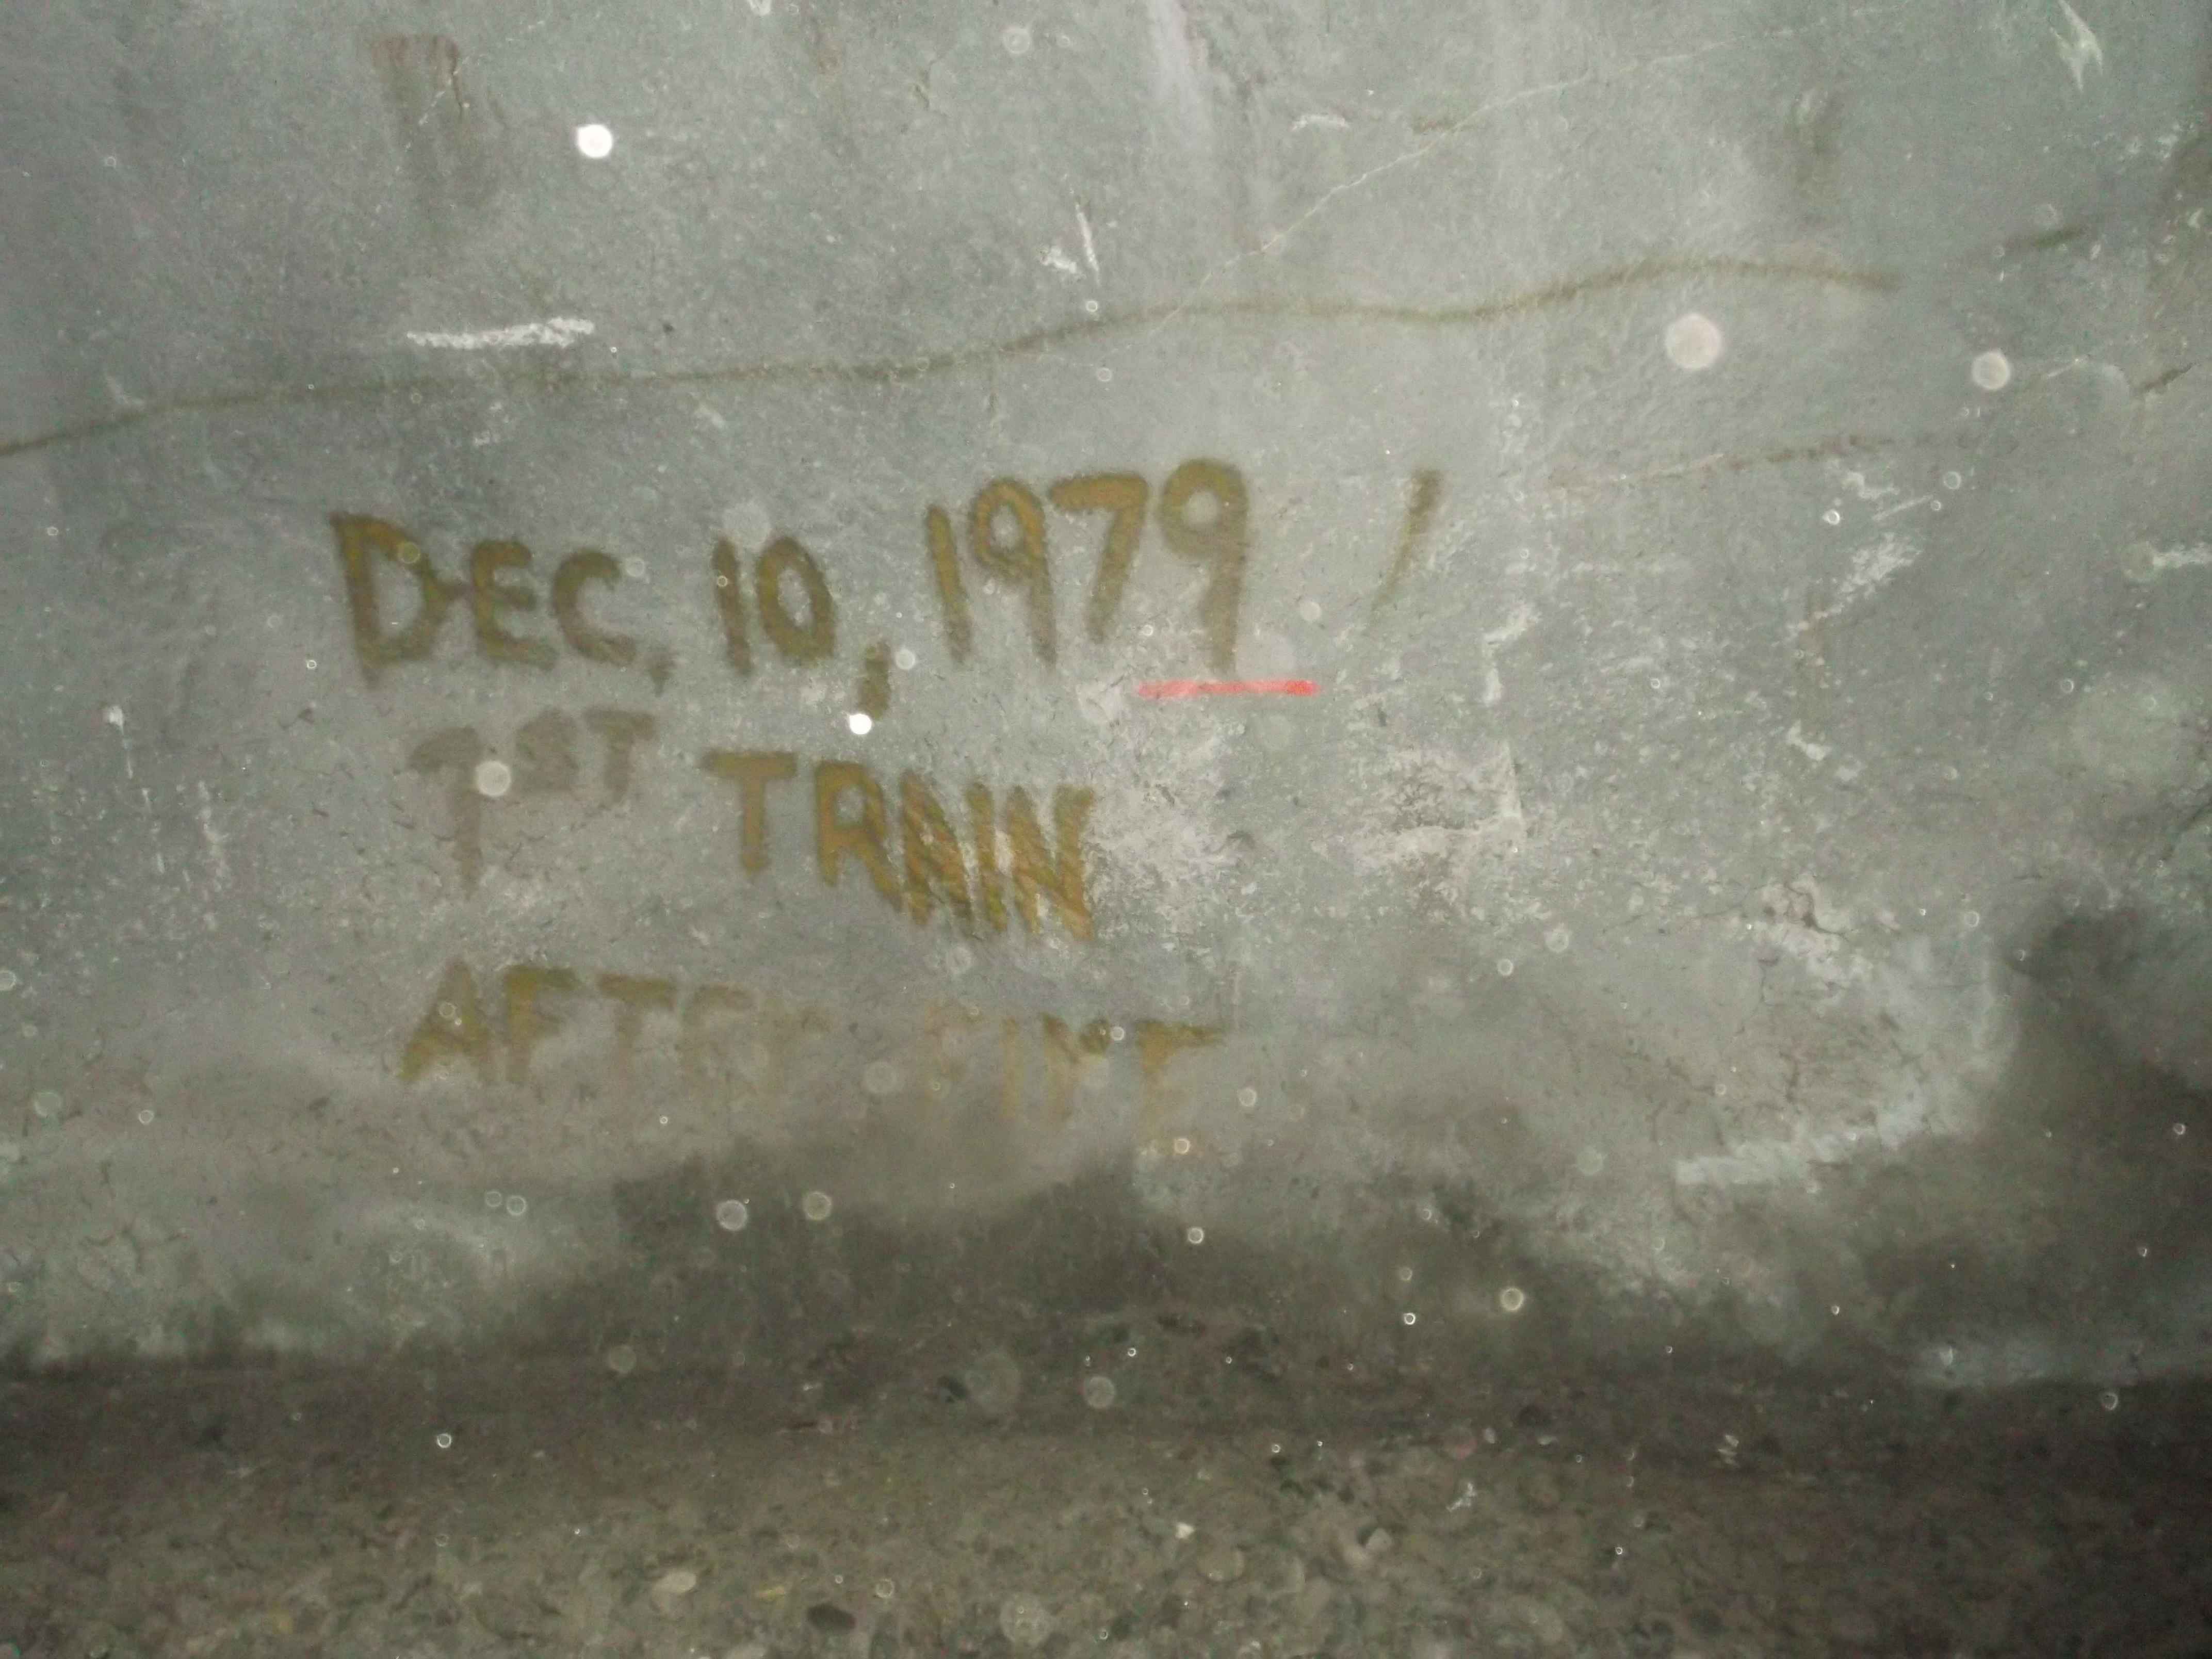 A crude note, hastily scribbled onto the wall of the tunnel, commemorates its re-opening after the fire of 1978. (photo by D. Speredelozzi)